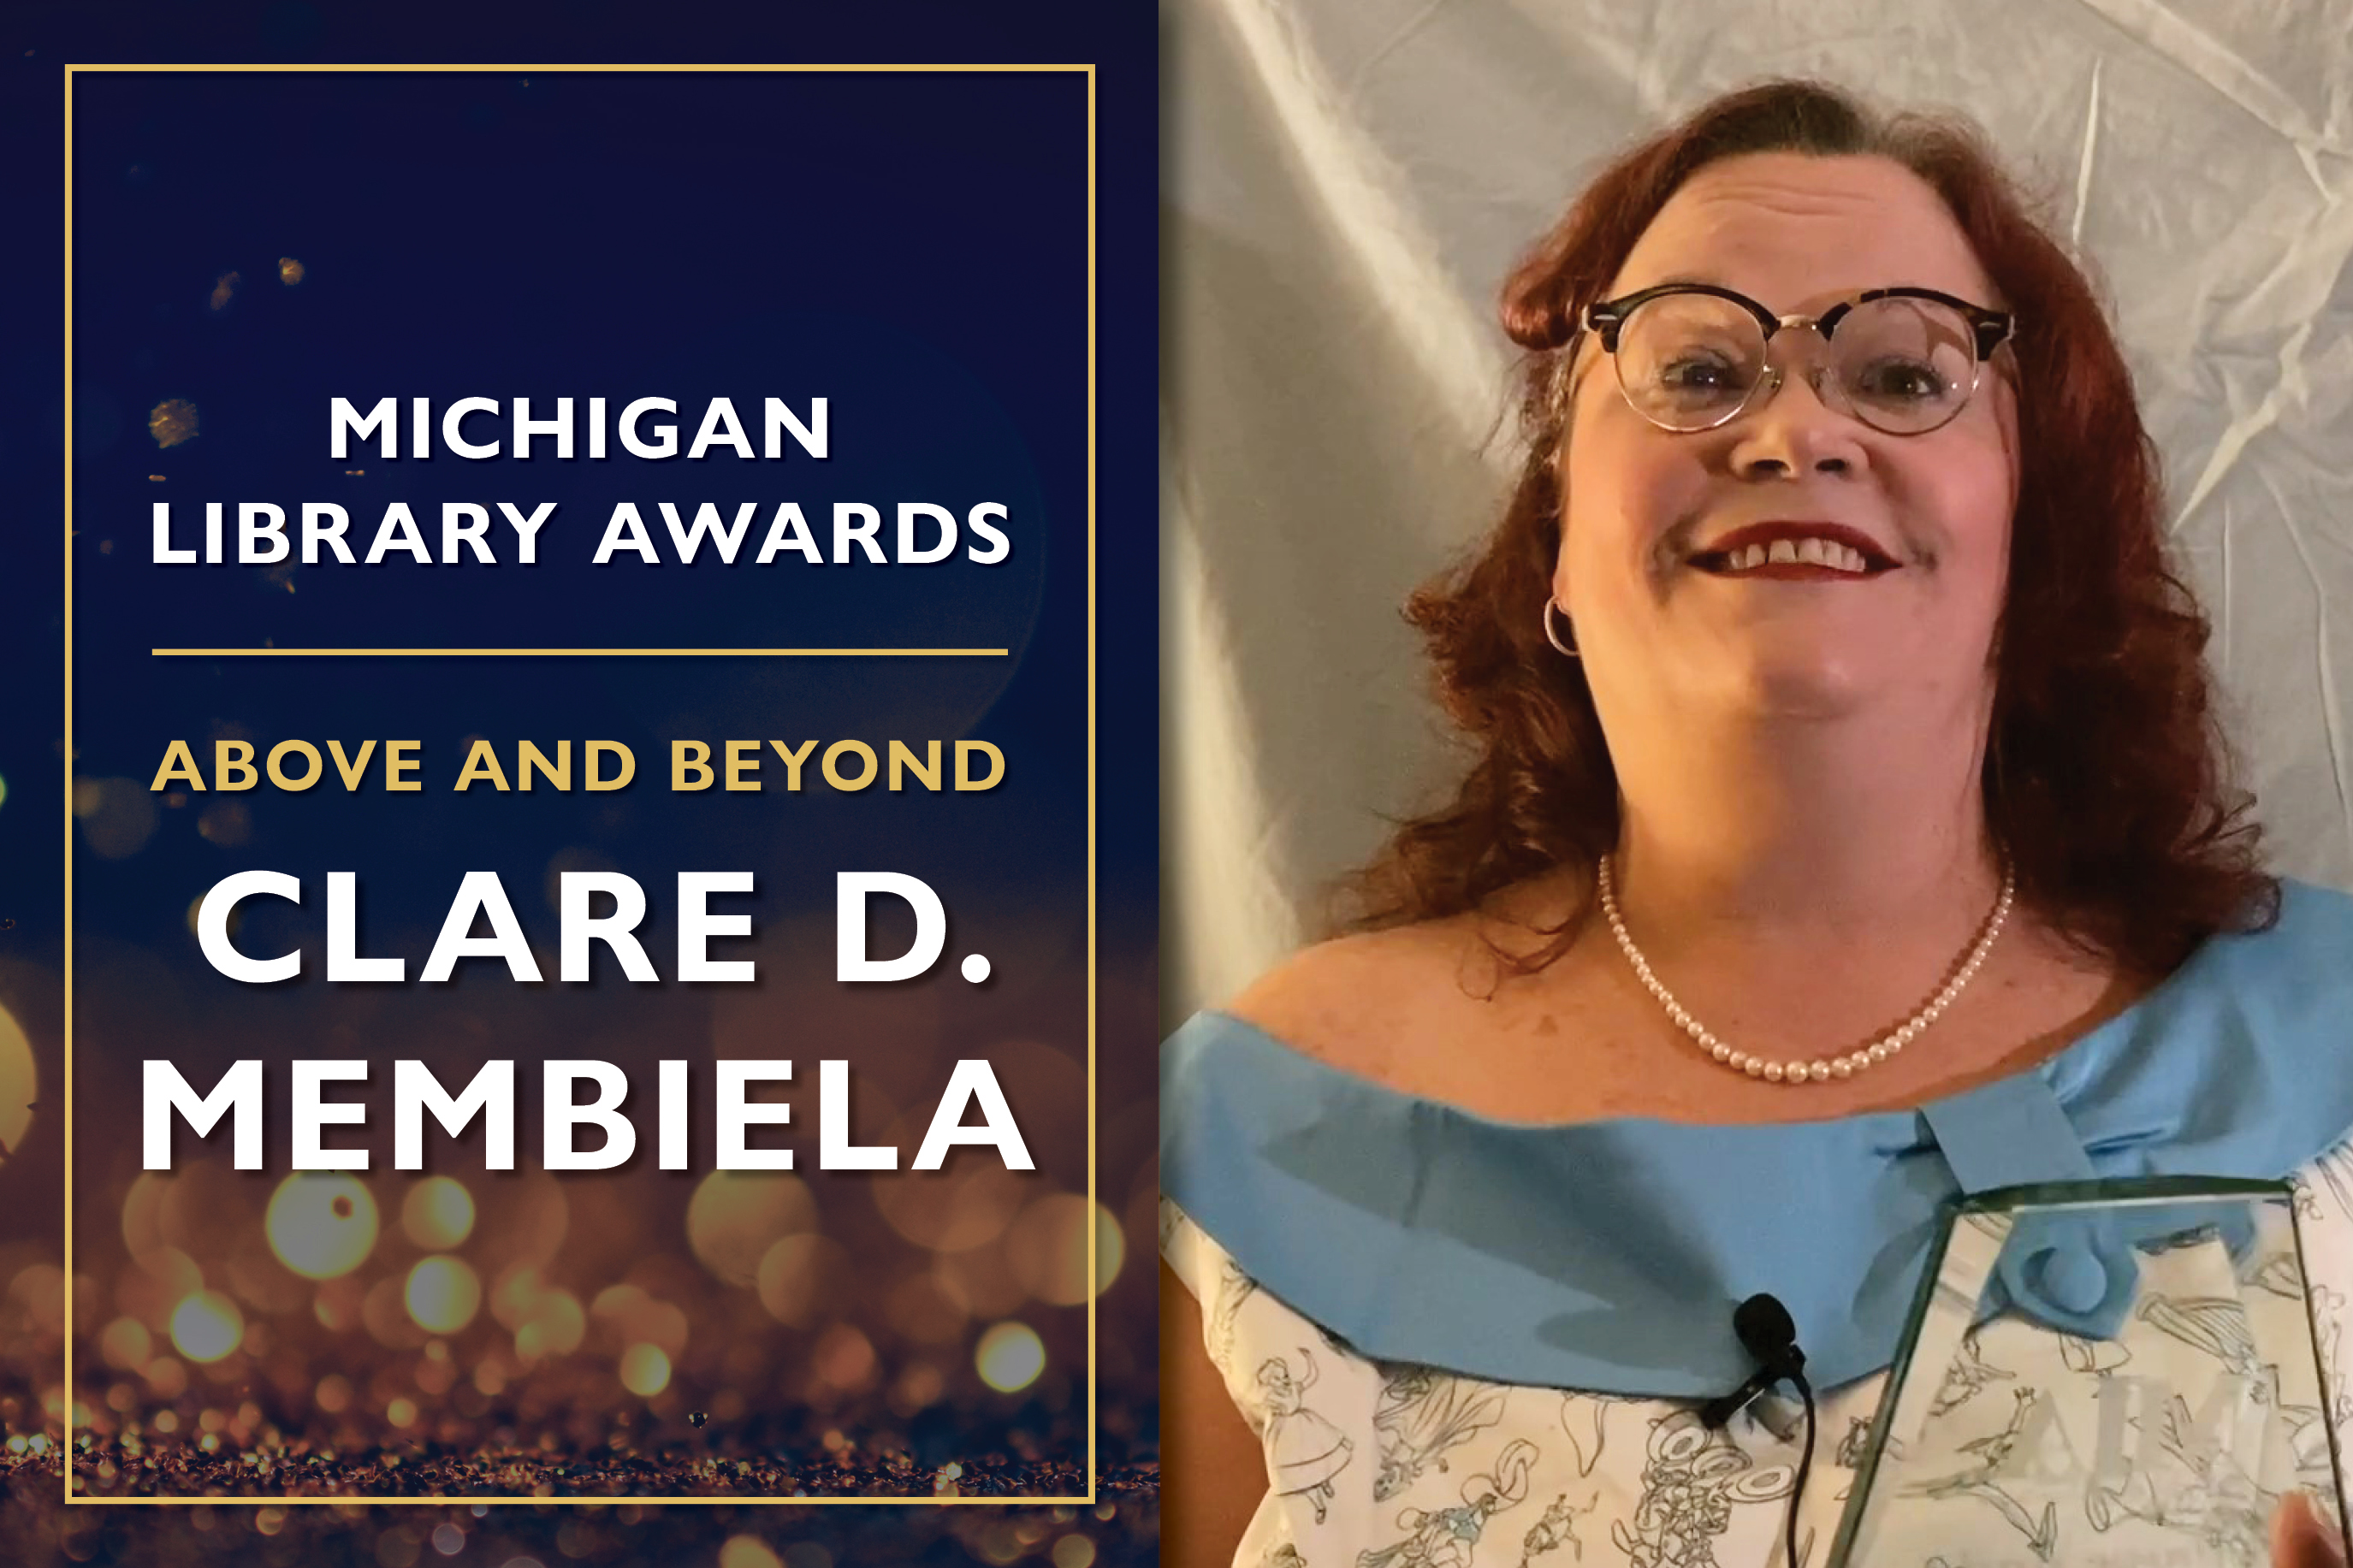 Above and Beyond  Clare D. Membiela, Library Law Consultant at the Library of Michigan